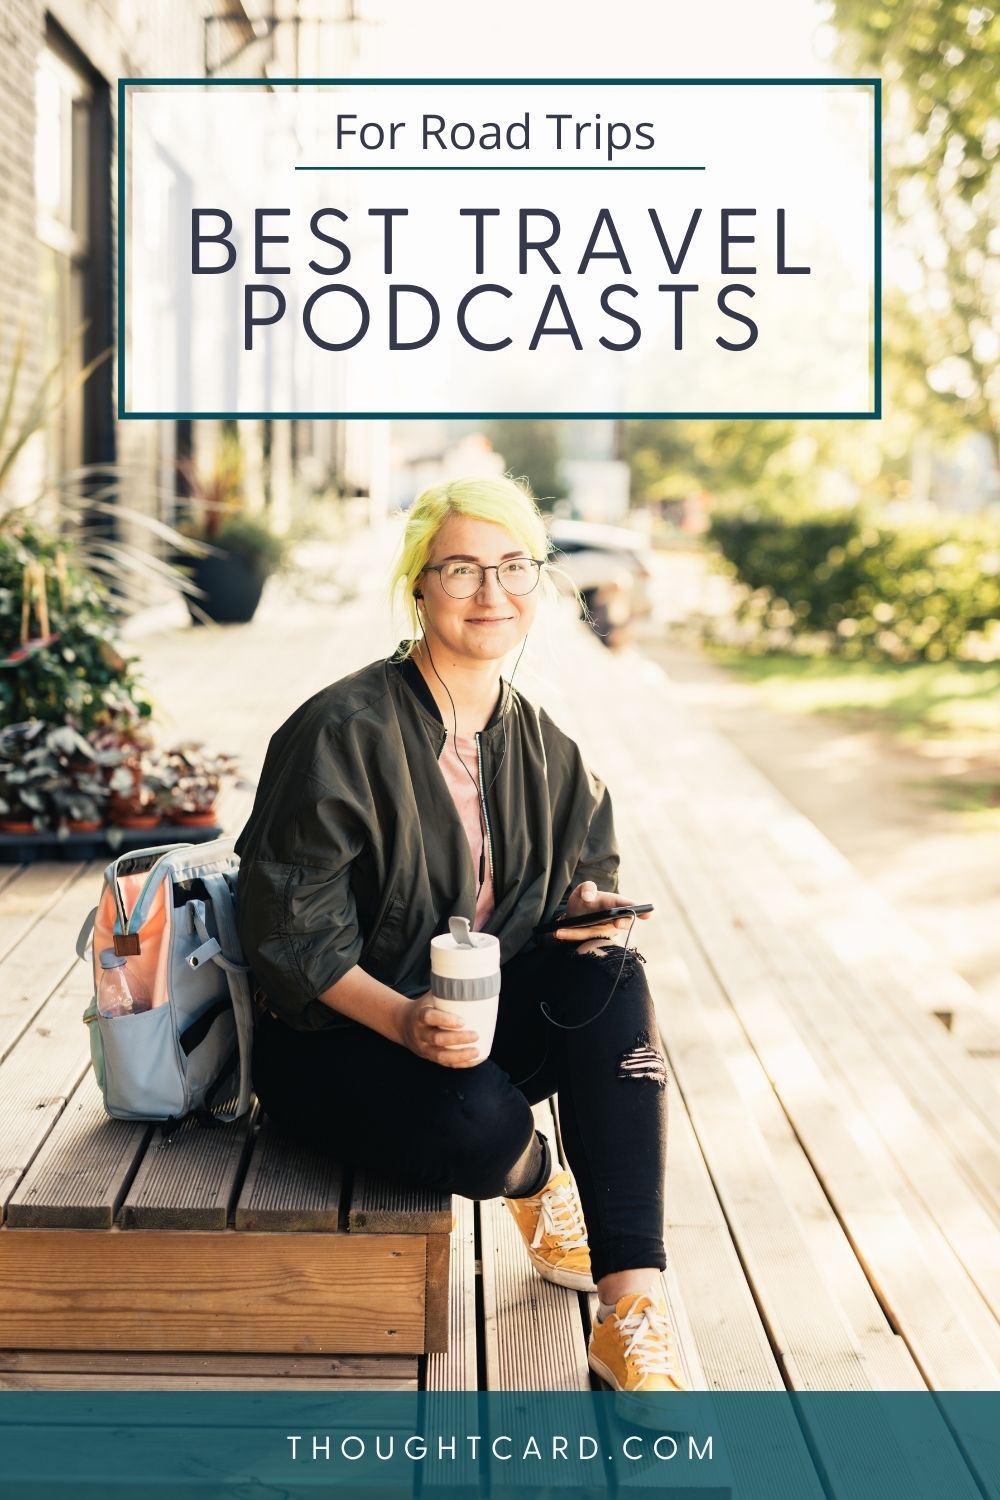 Best Travel Podcasts For Road Trips